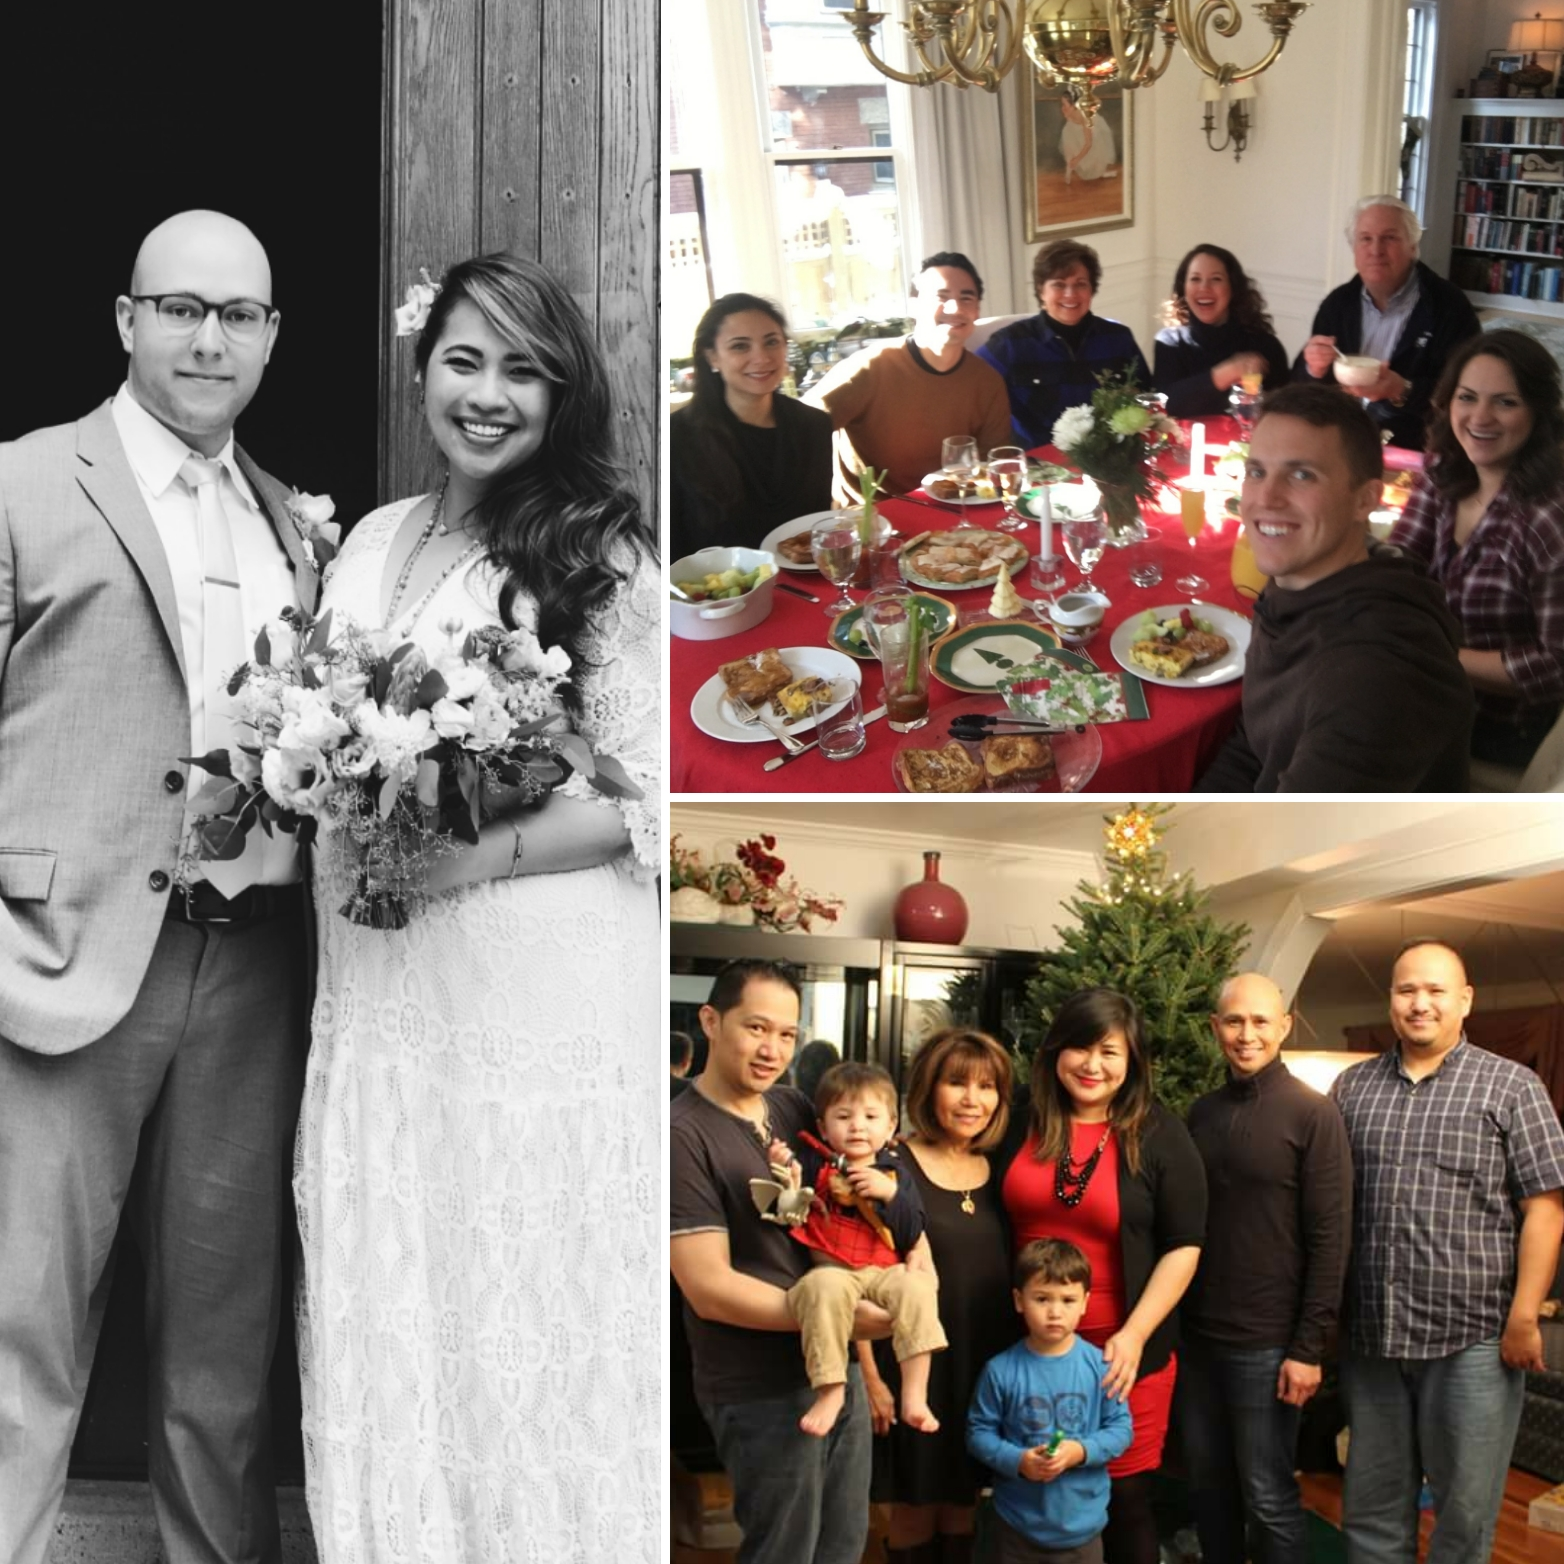 Clockwise  - Bianca and her husband Matt on their wedding day in July; Leila and her family during Christmas brunch this year; Trish and her family during their Noche Buena celebration.